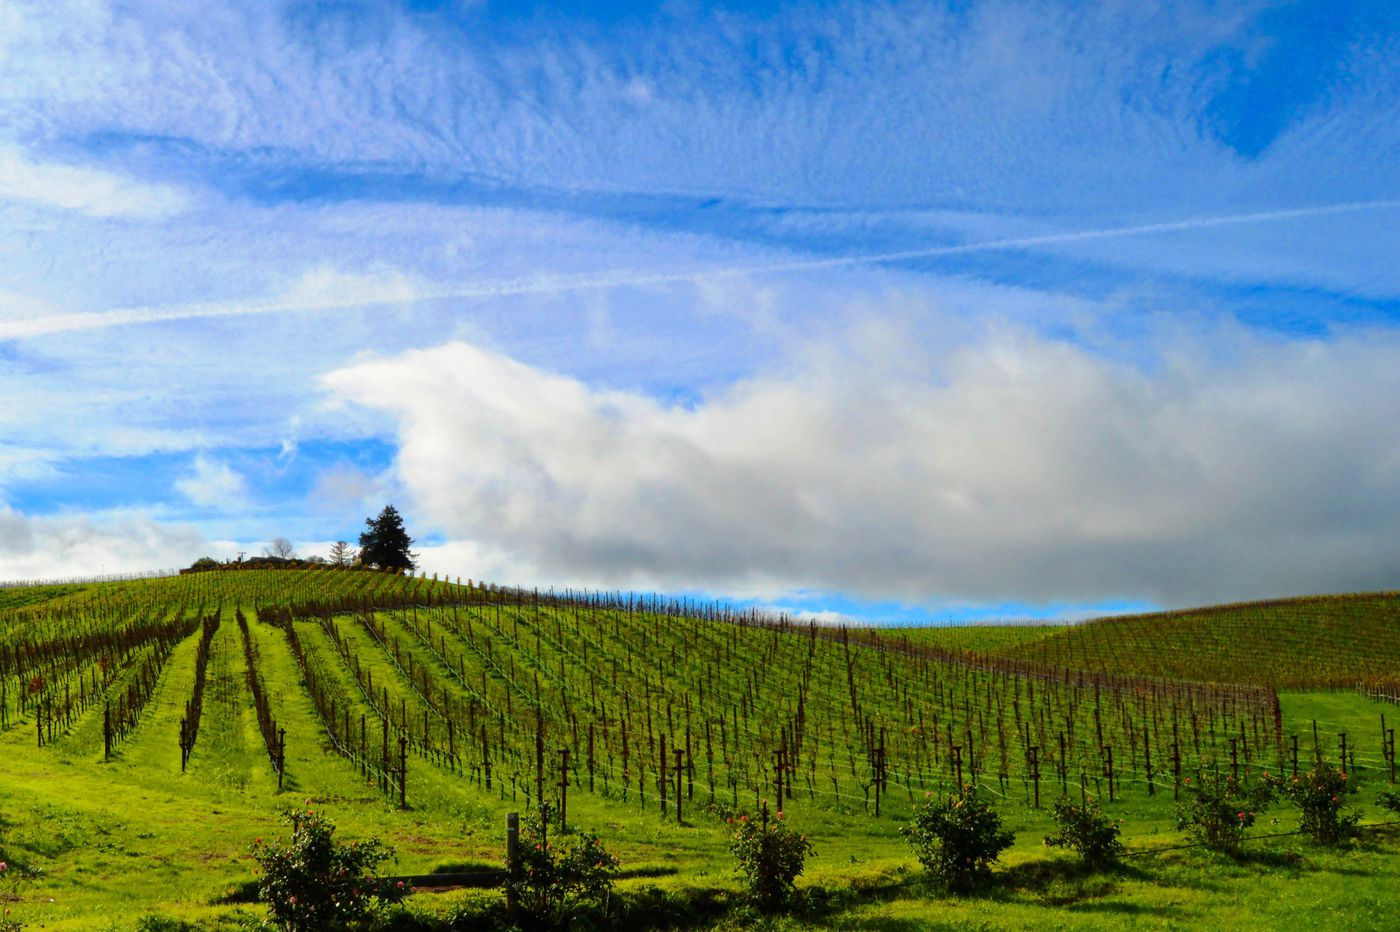 When buying sauvignon blanc, choose wines from this part of California